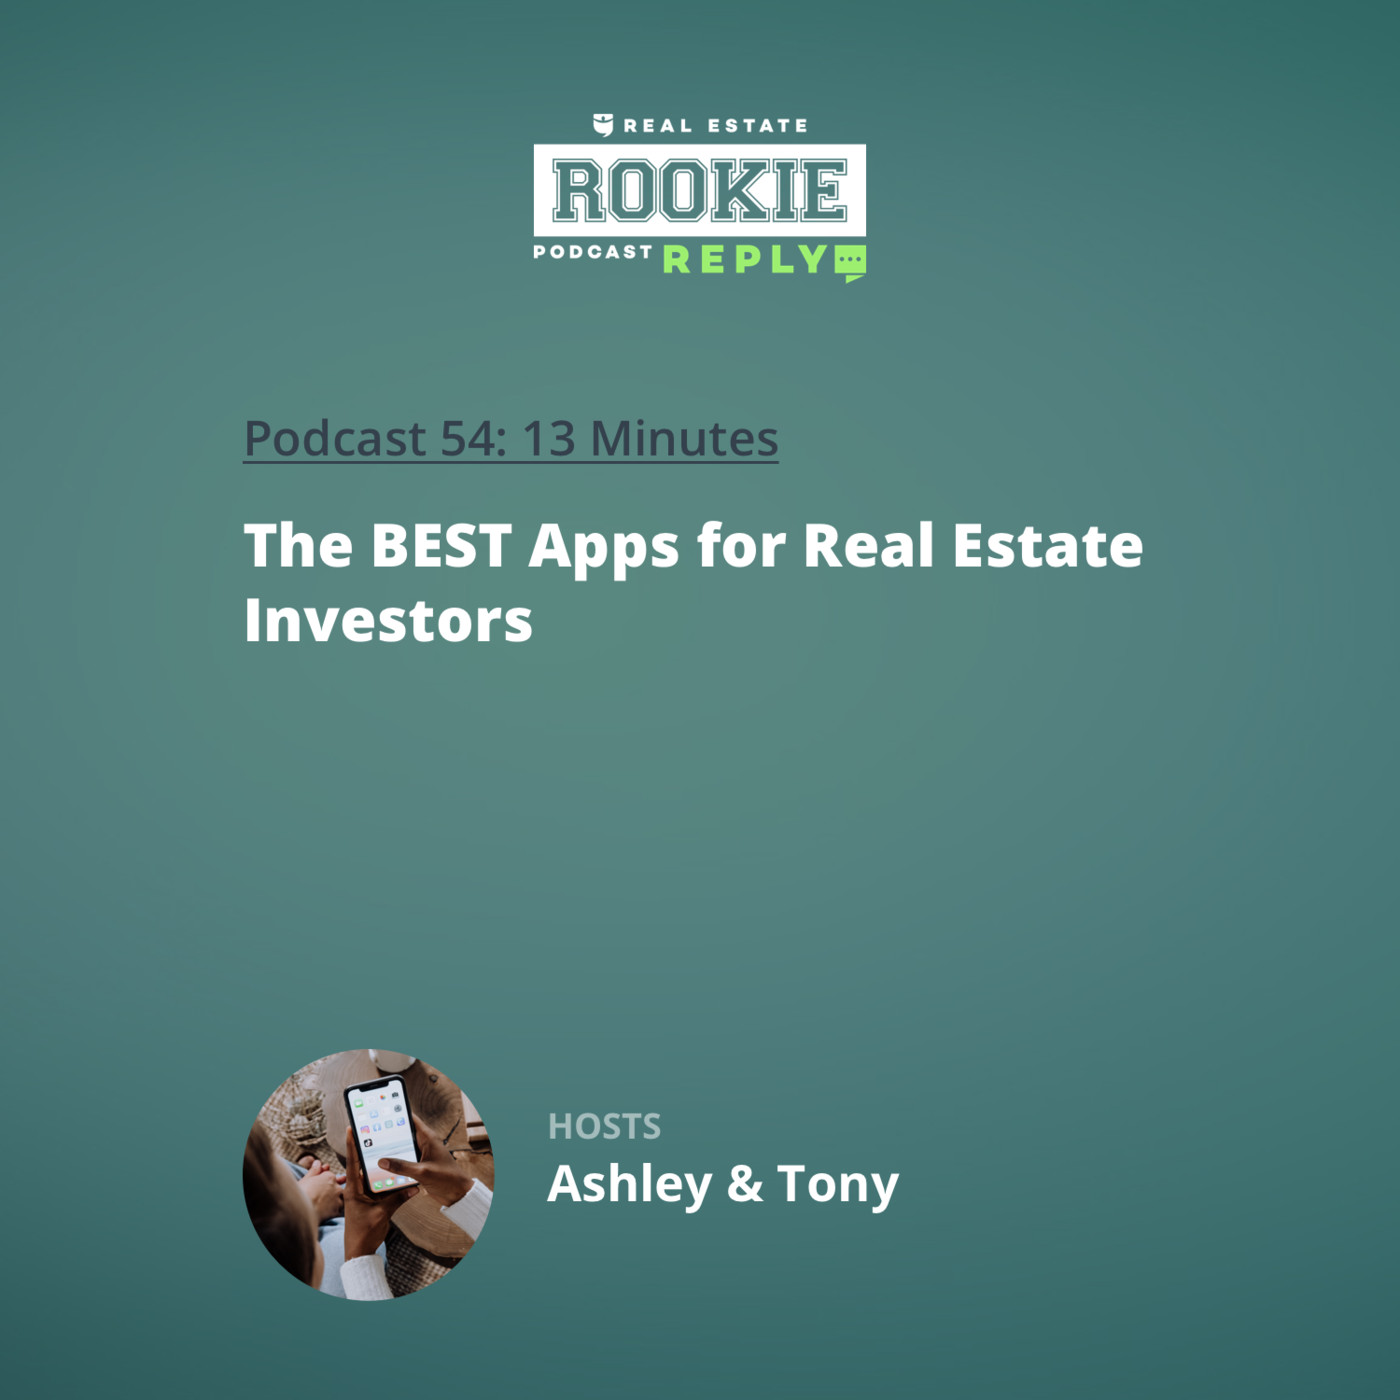 Rookie Reply: The BEST Apps for Real Estate Investors